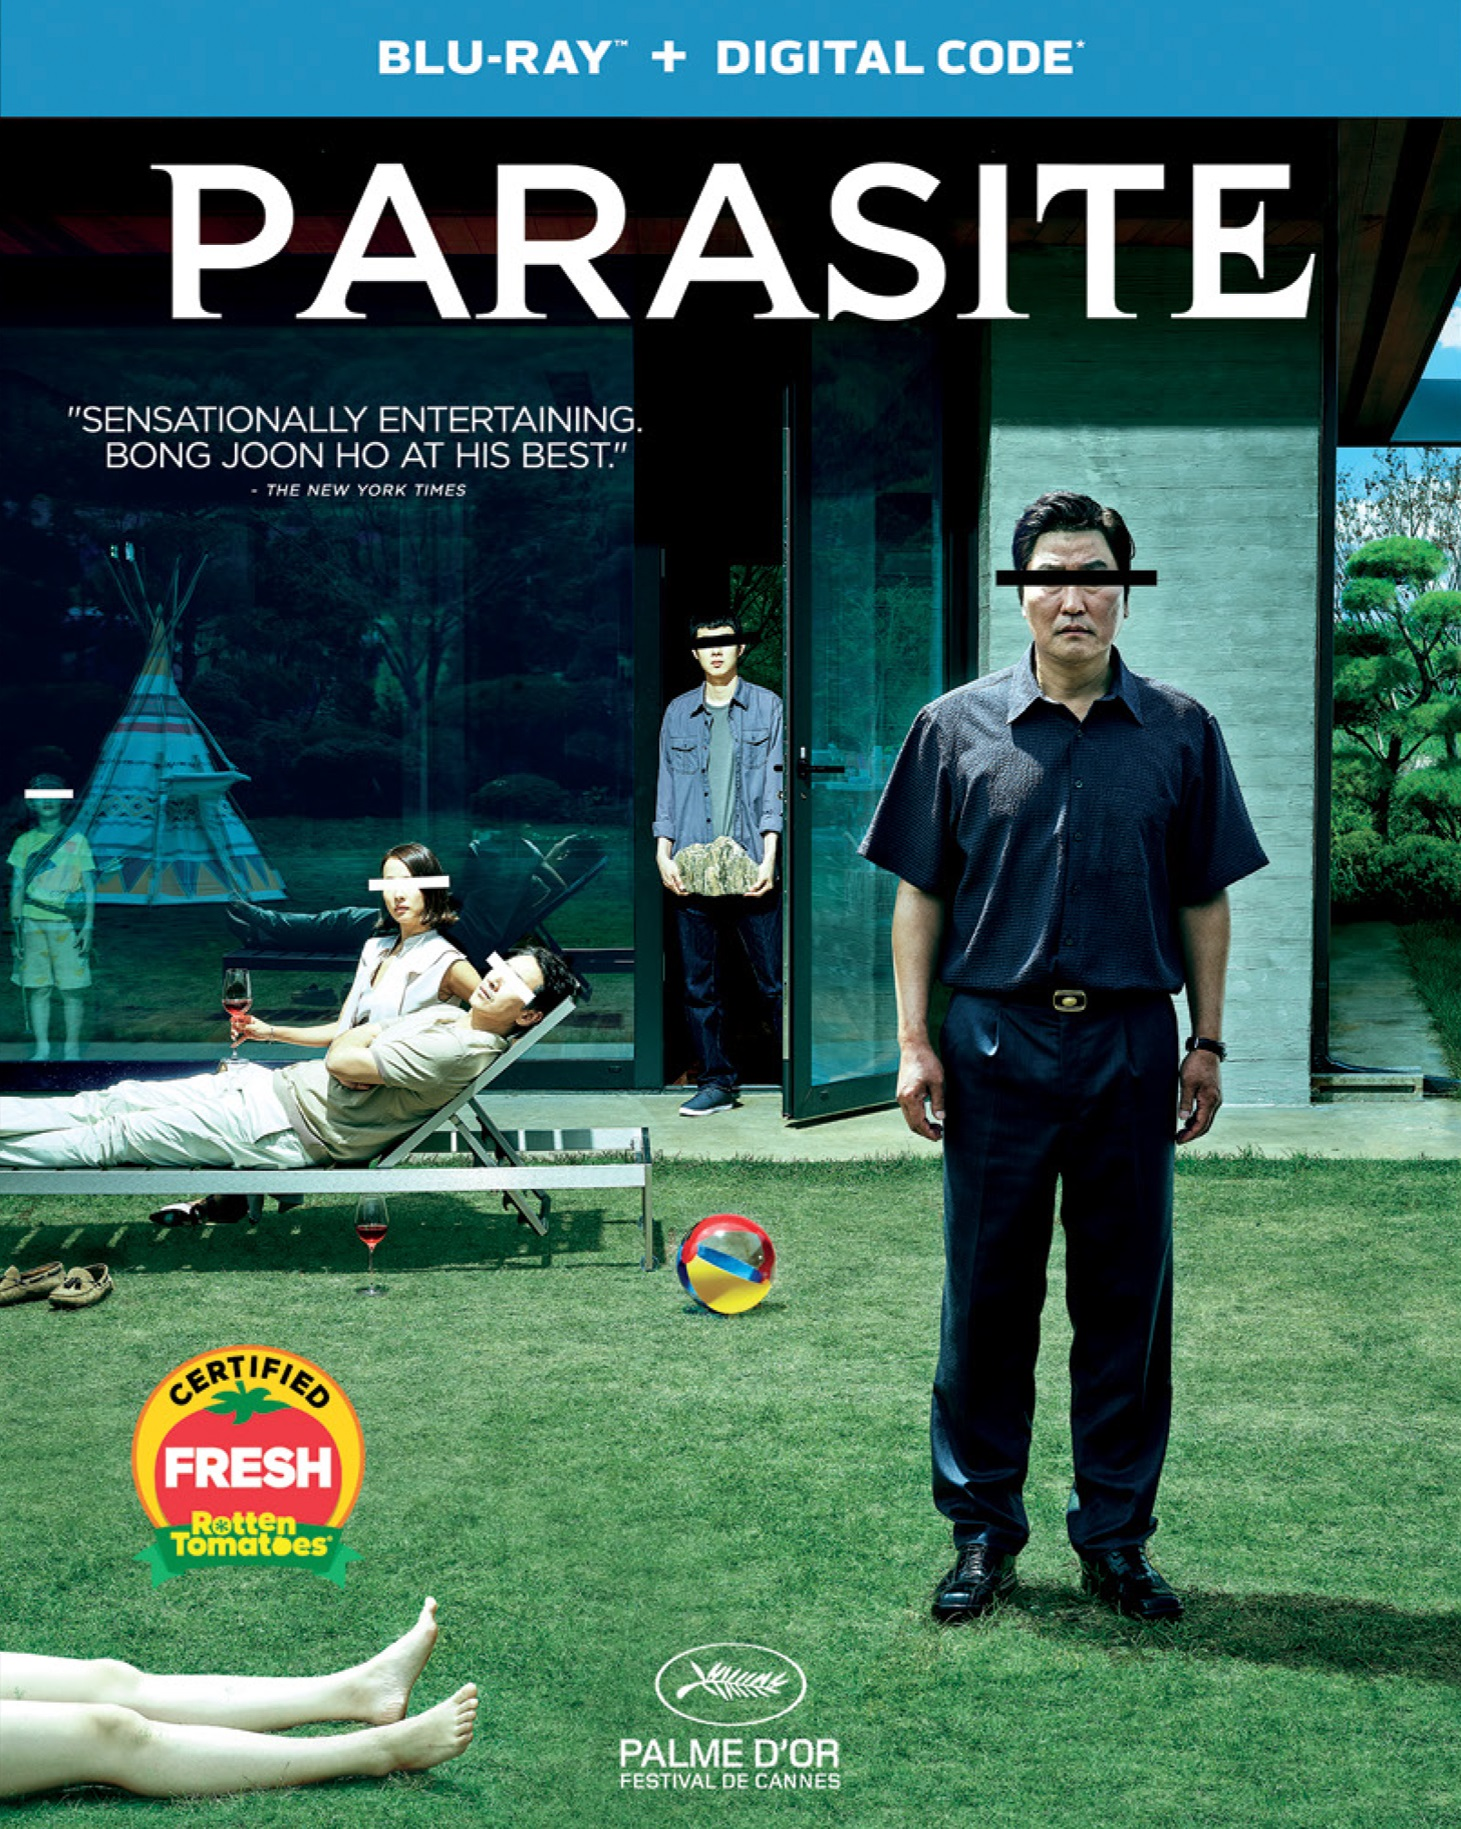 Parasite (Blu-ray + Digital Copy)